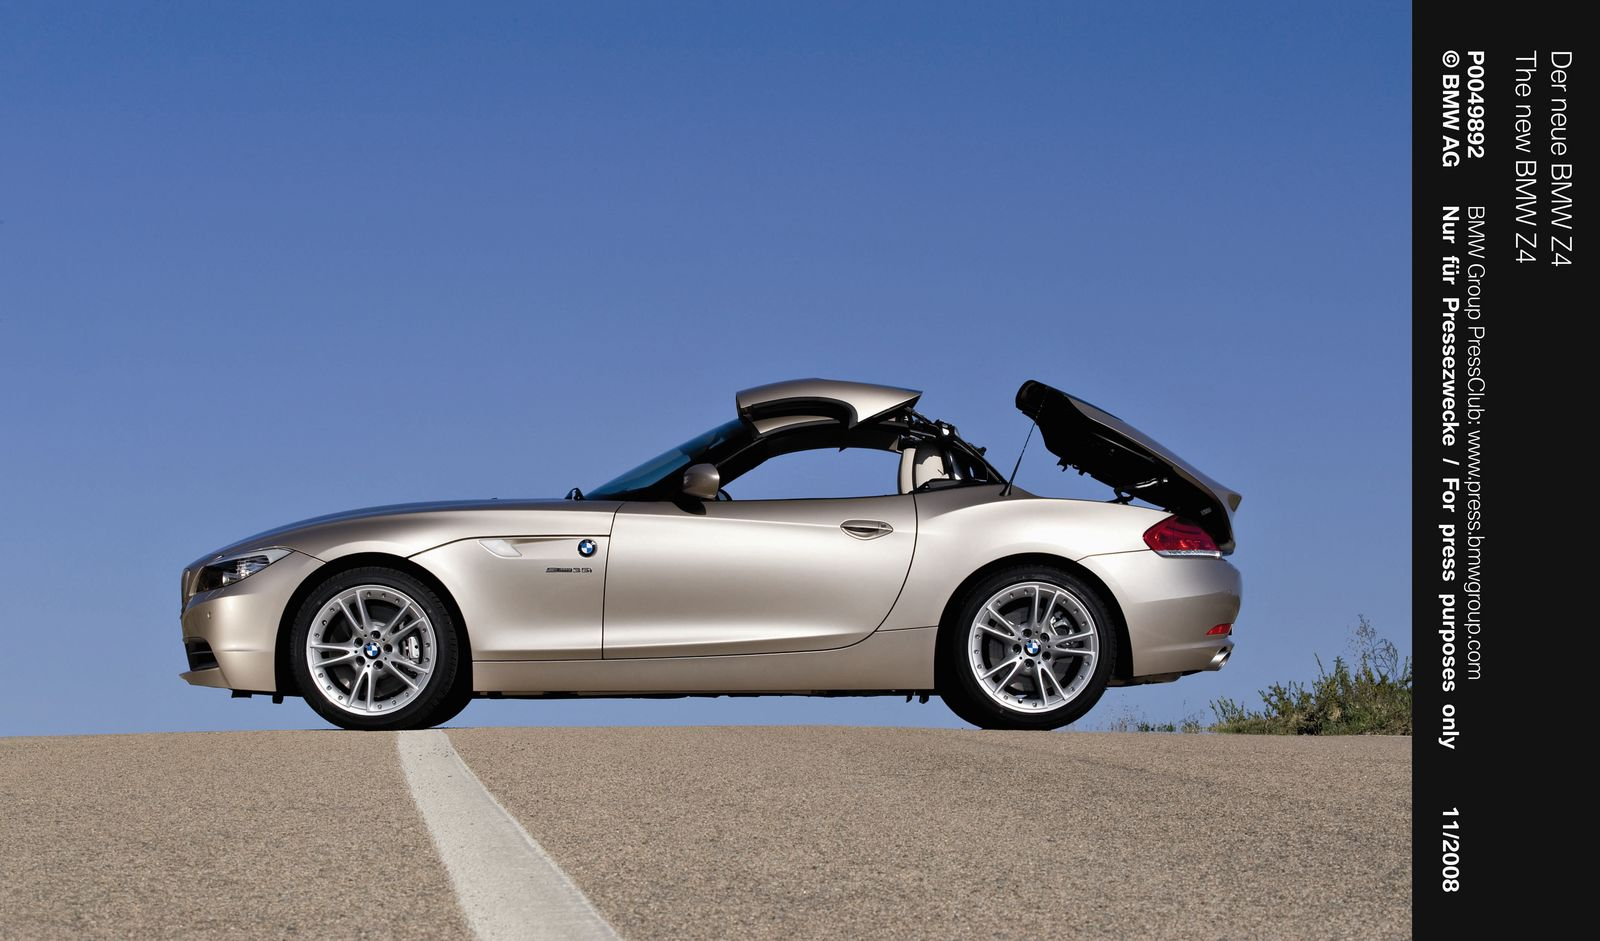 2009 Bmw Z4 Has 3 Series Convertible To Thank